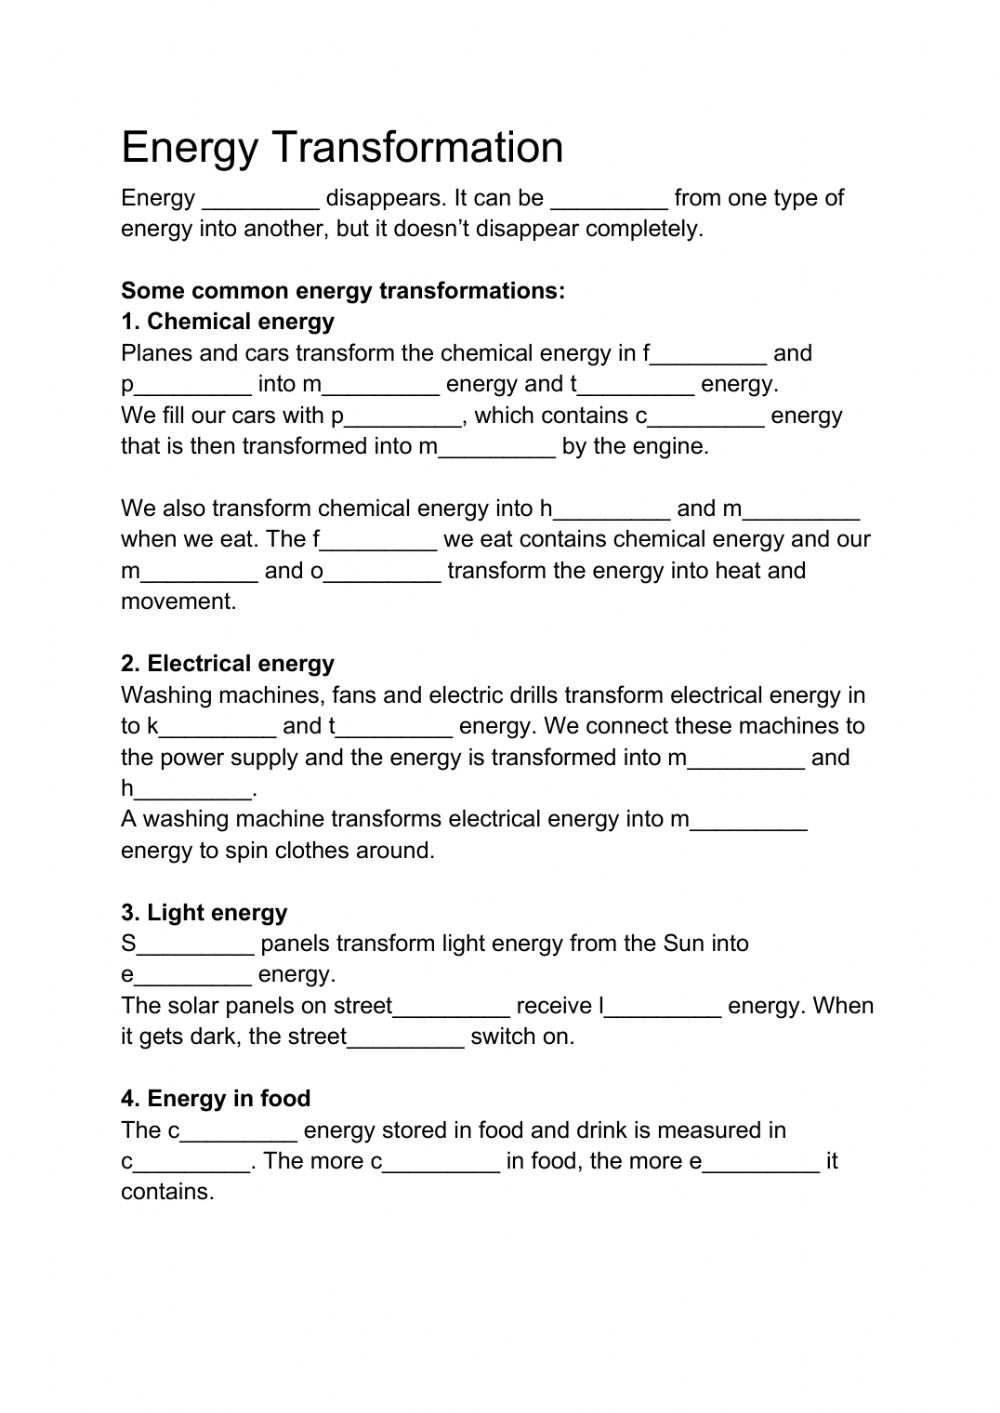 Energy Transformation Worksheet Pdf Energy Transformation Interactive Worksheet